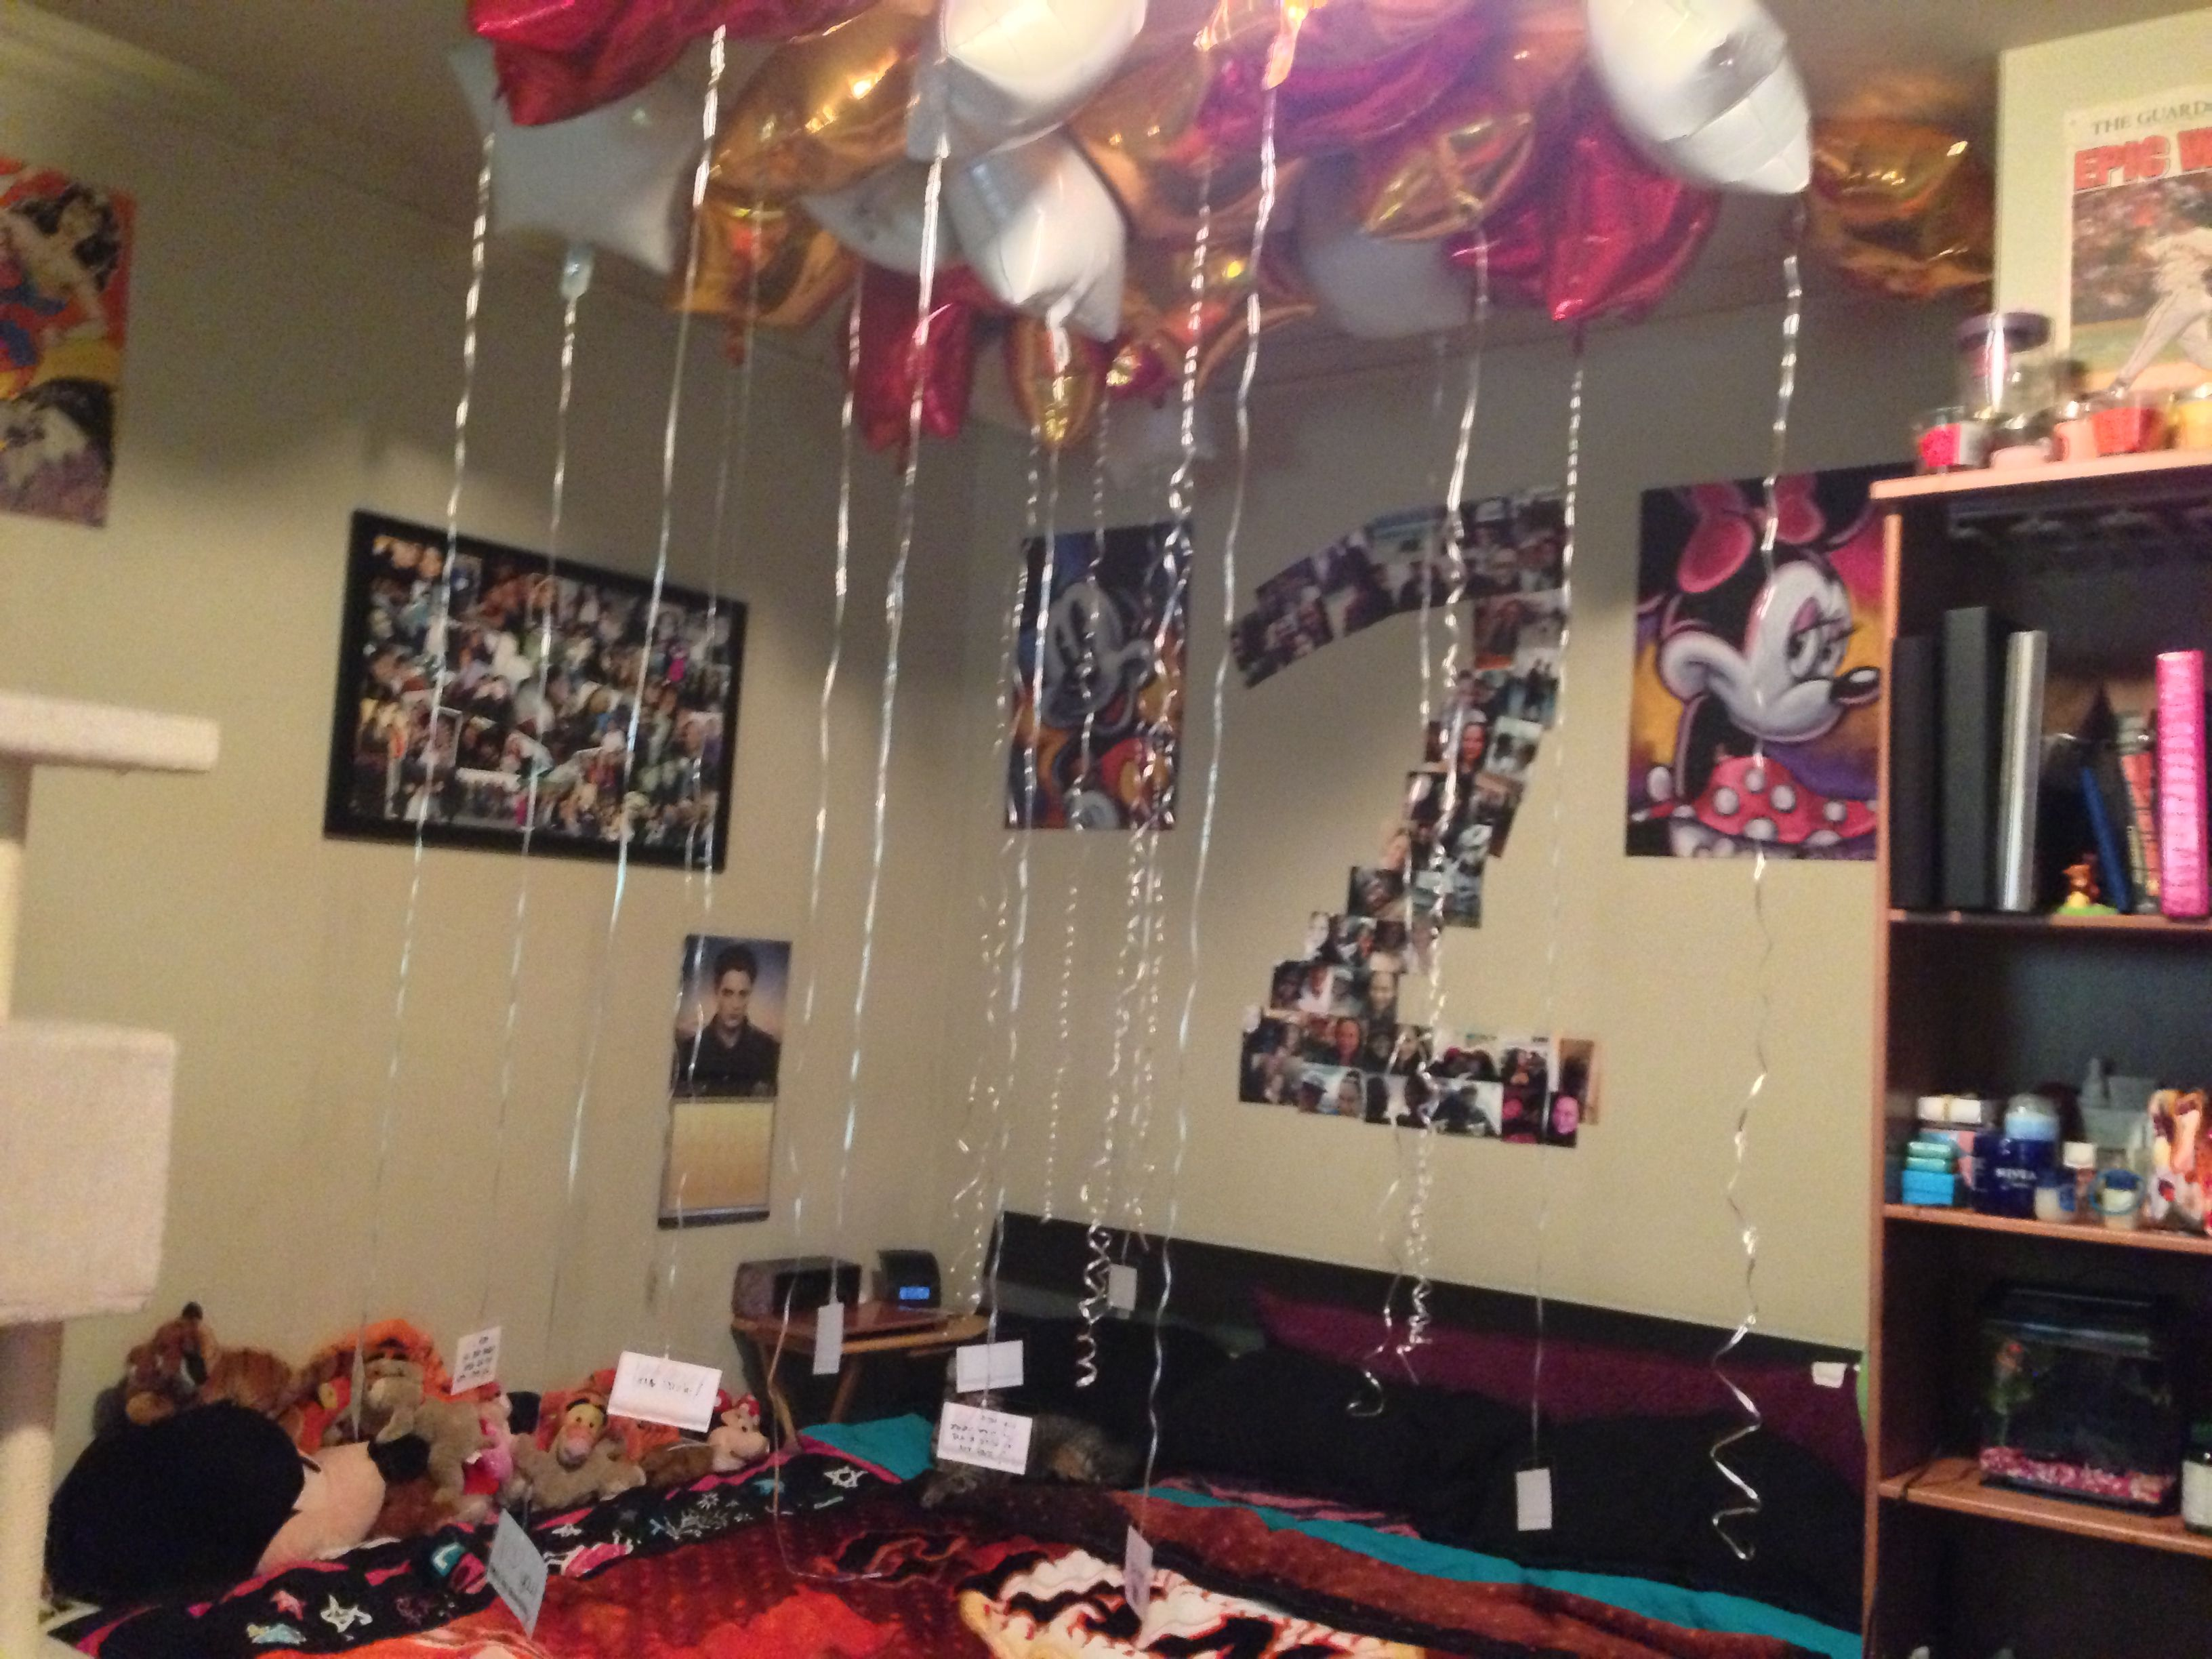 2nd year anniversary 24 balloons for the 24 months together with a